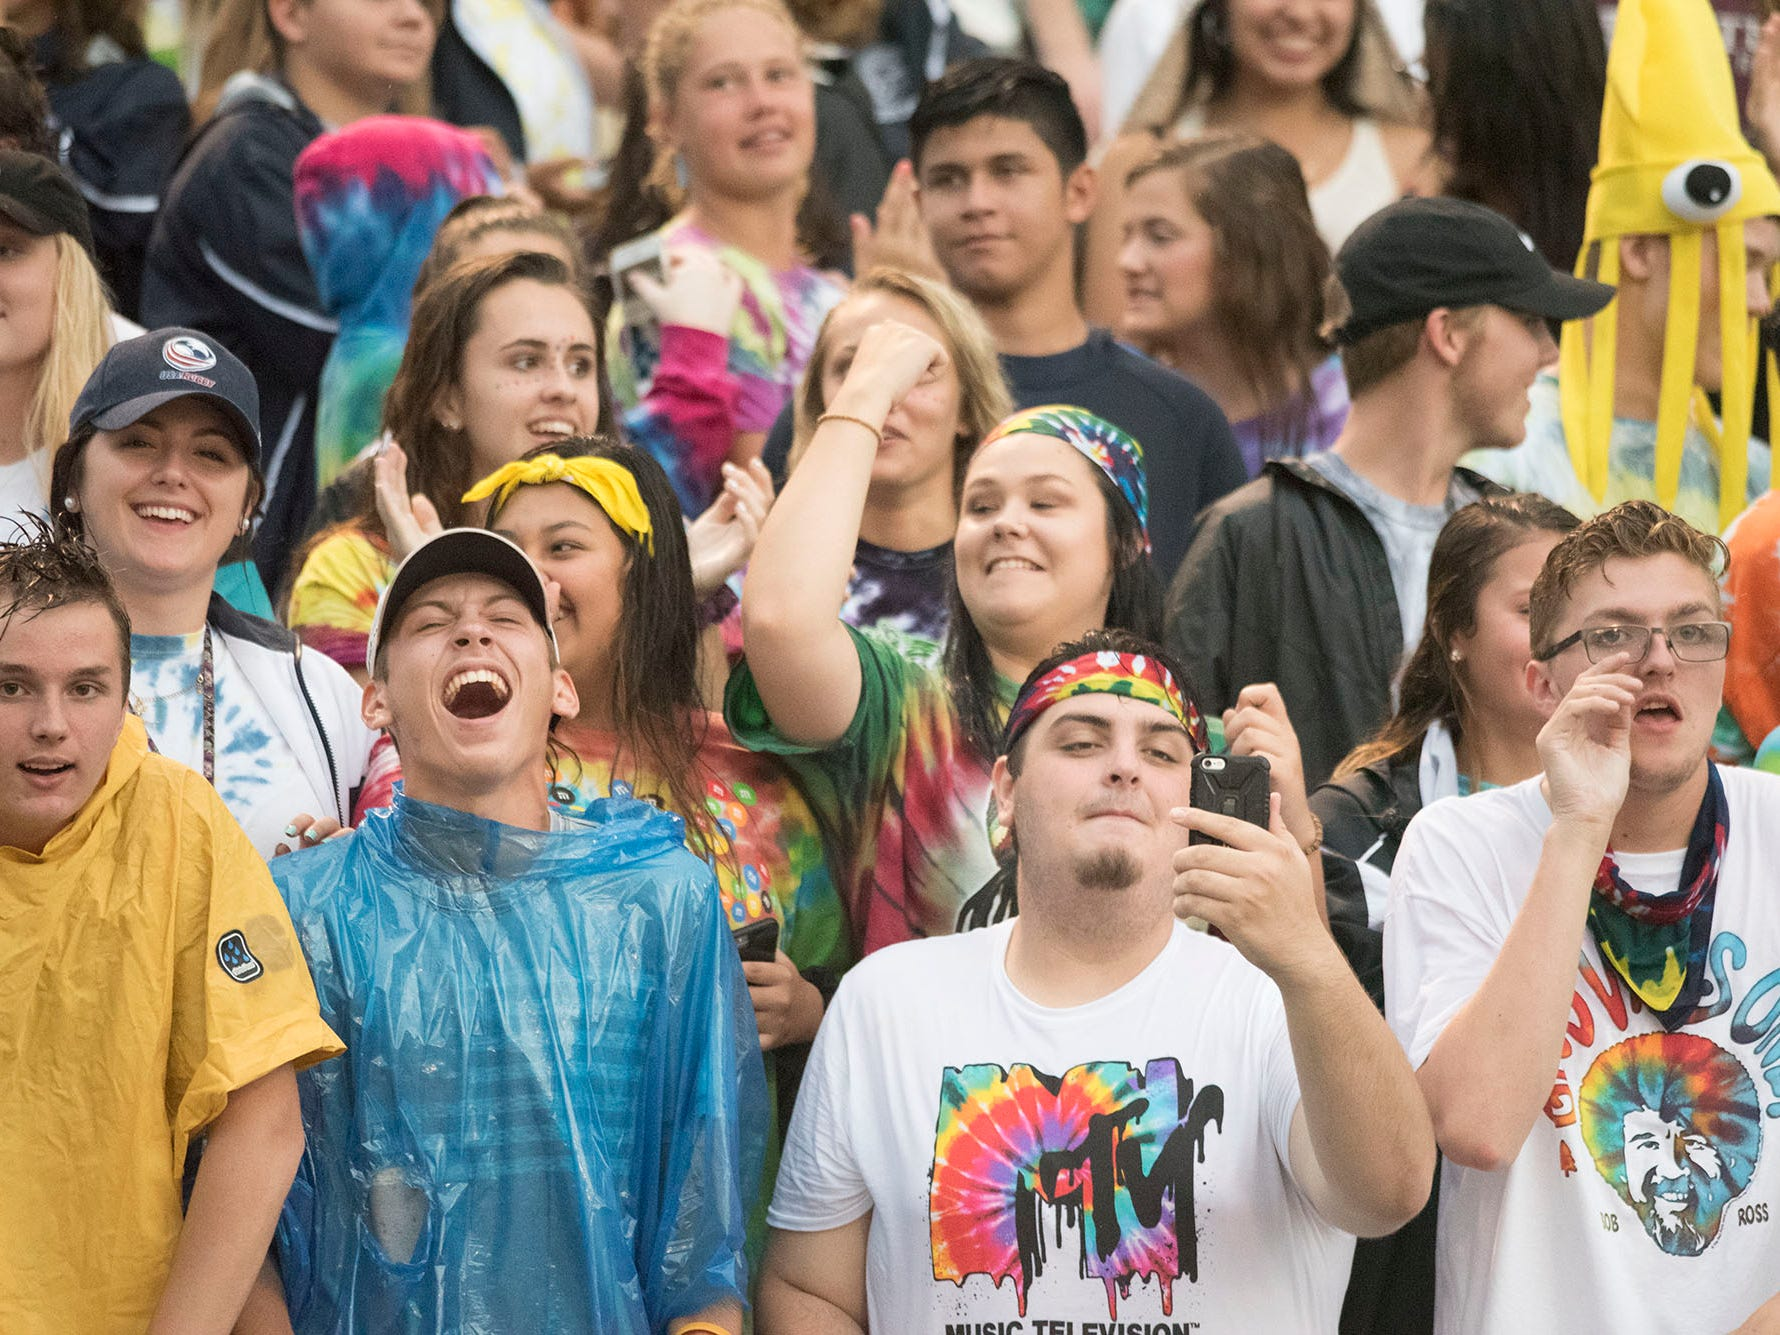 Trojans fans cheer during the game. Chambersburg defeated Red Lion 28-19 in PIAA football on Friday, Sept. 7, 2018.